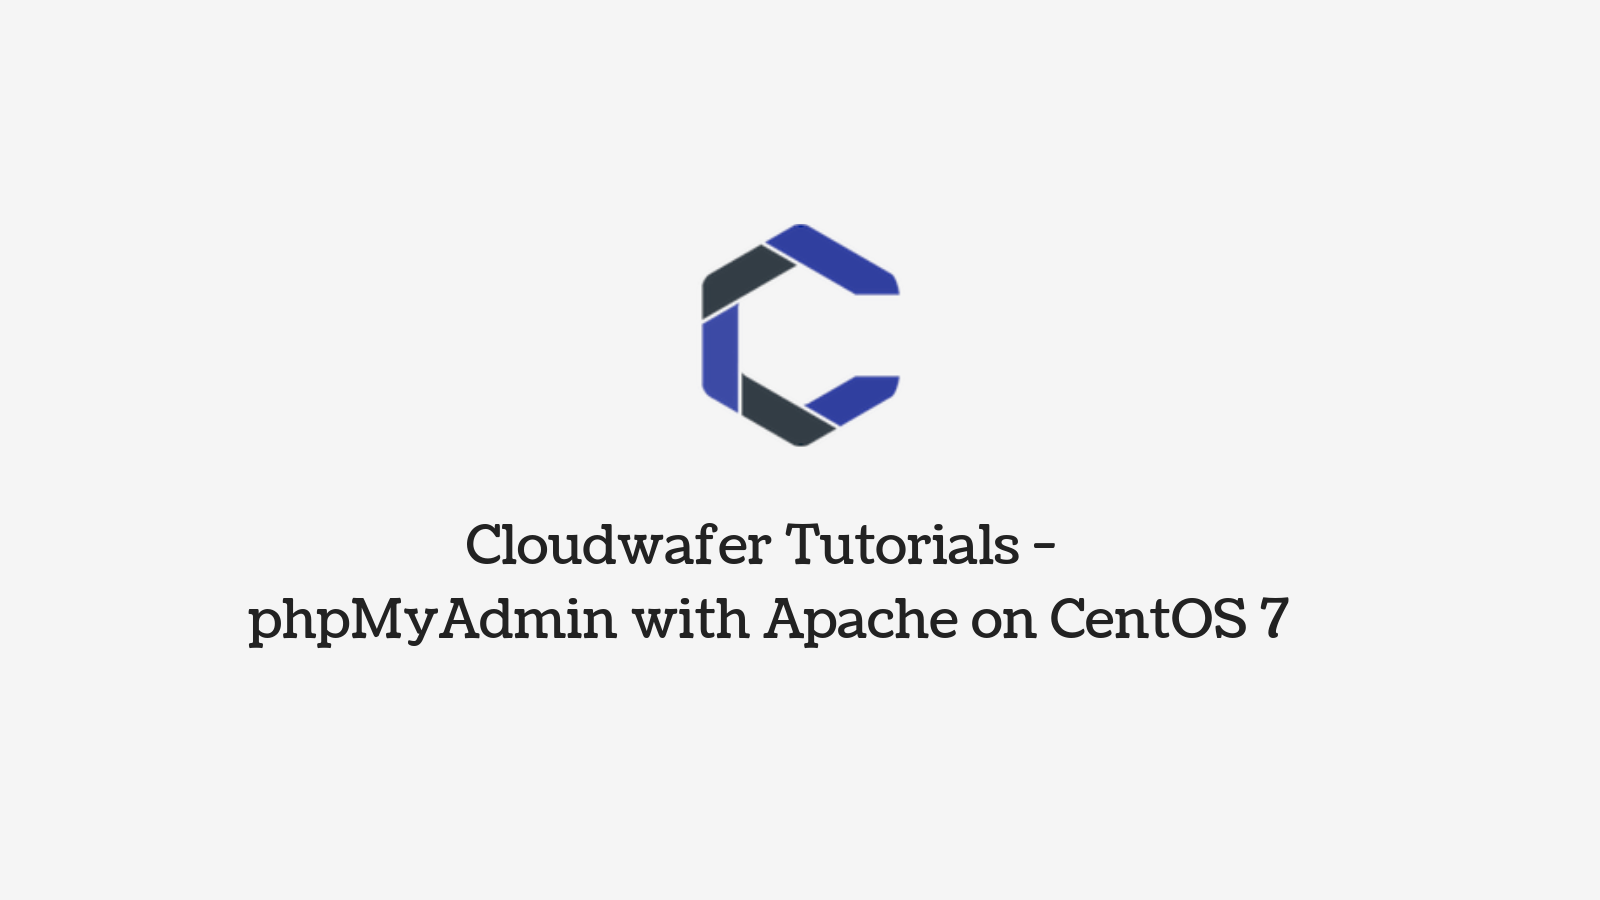 How to install and configure phpMyAdmin on CentOS 7